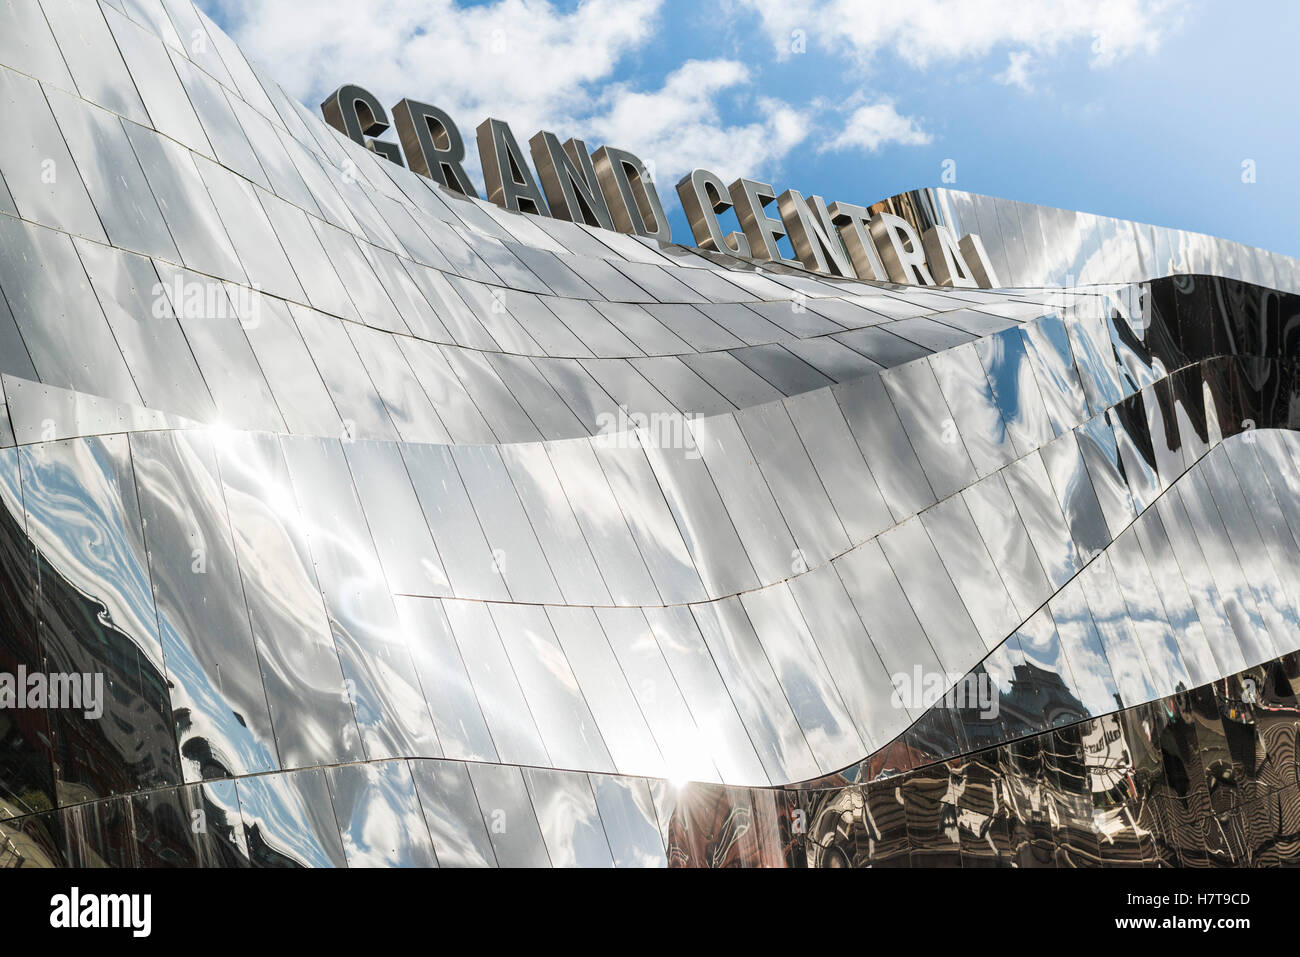 Grand Central shopping centre exterior at Birmingham New Street station, Birmingham, England.  Editorial usage only. - Stock Image